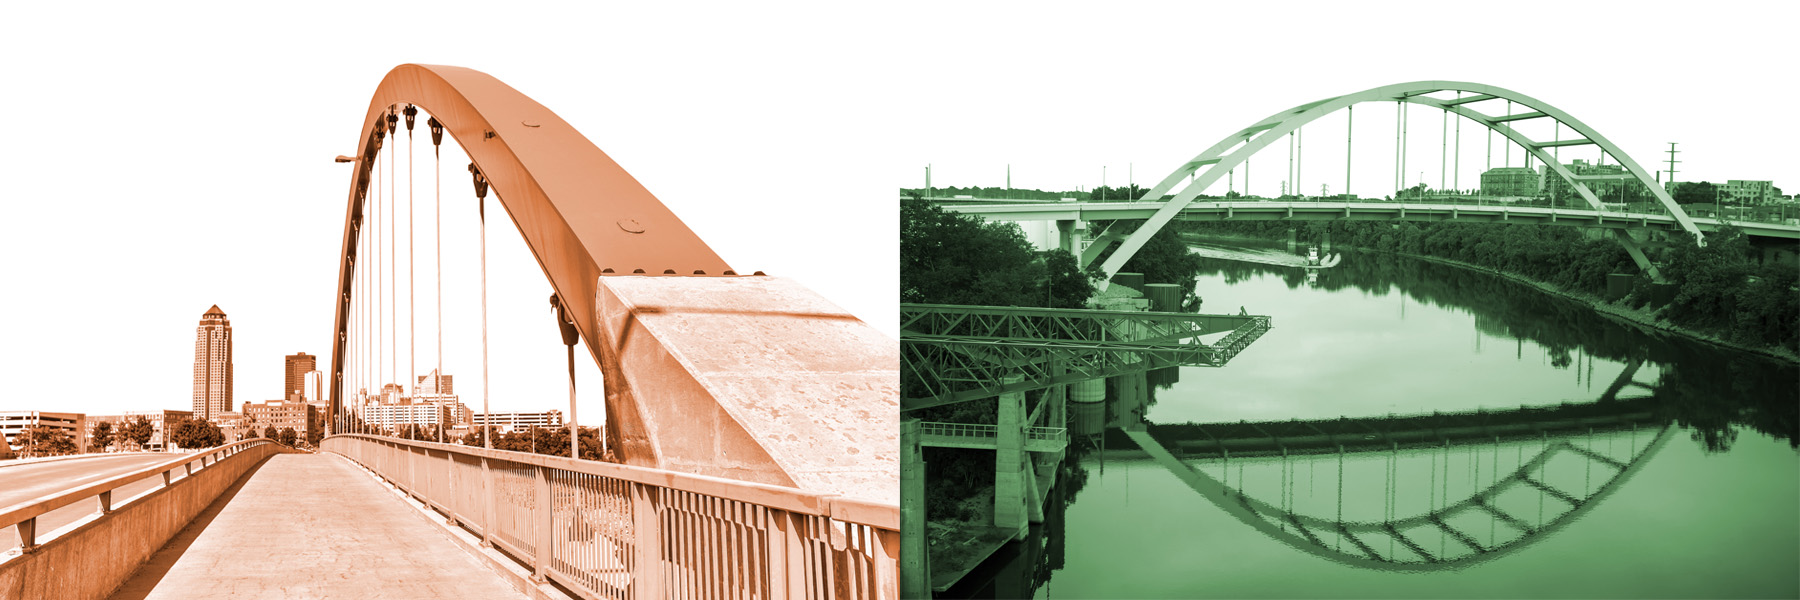 Footer banner photo showing two bridges